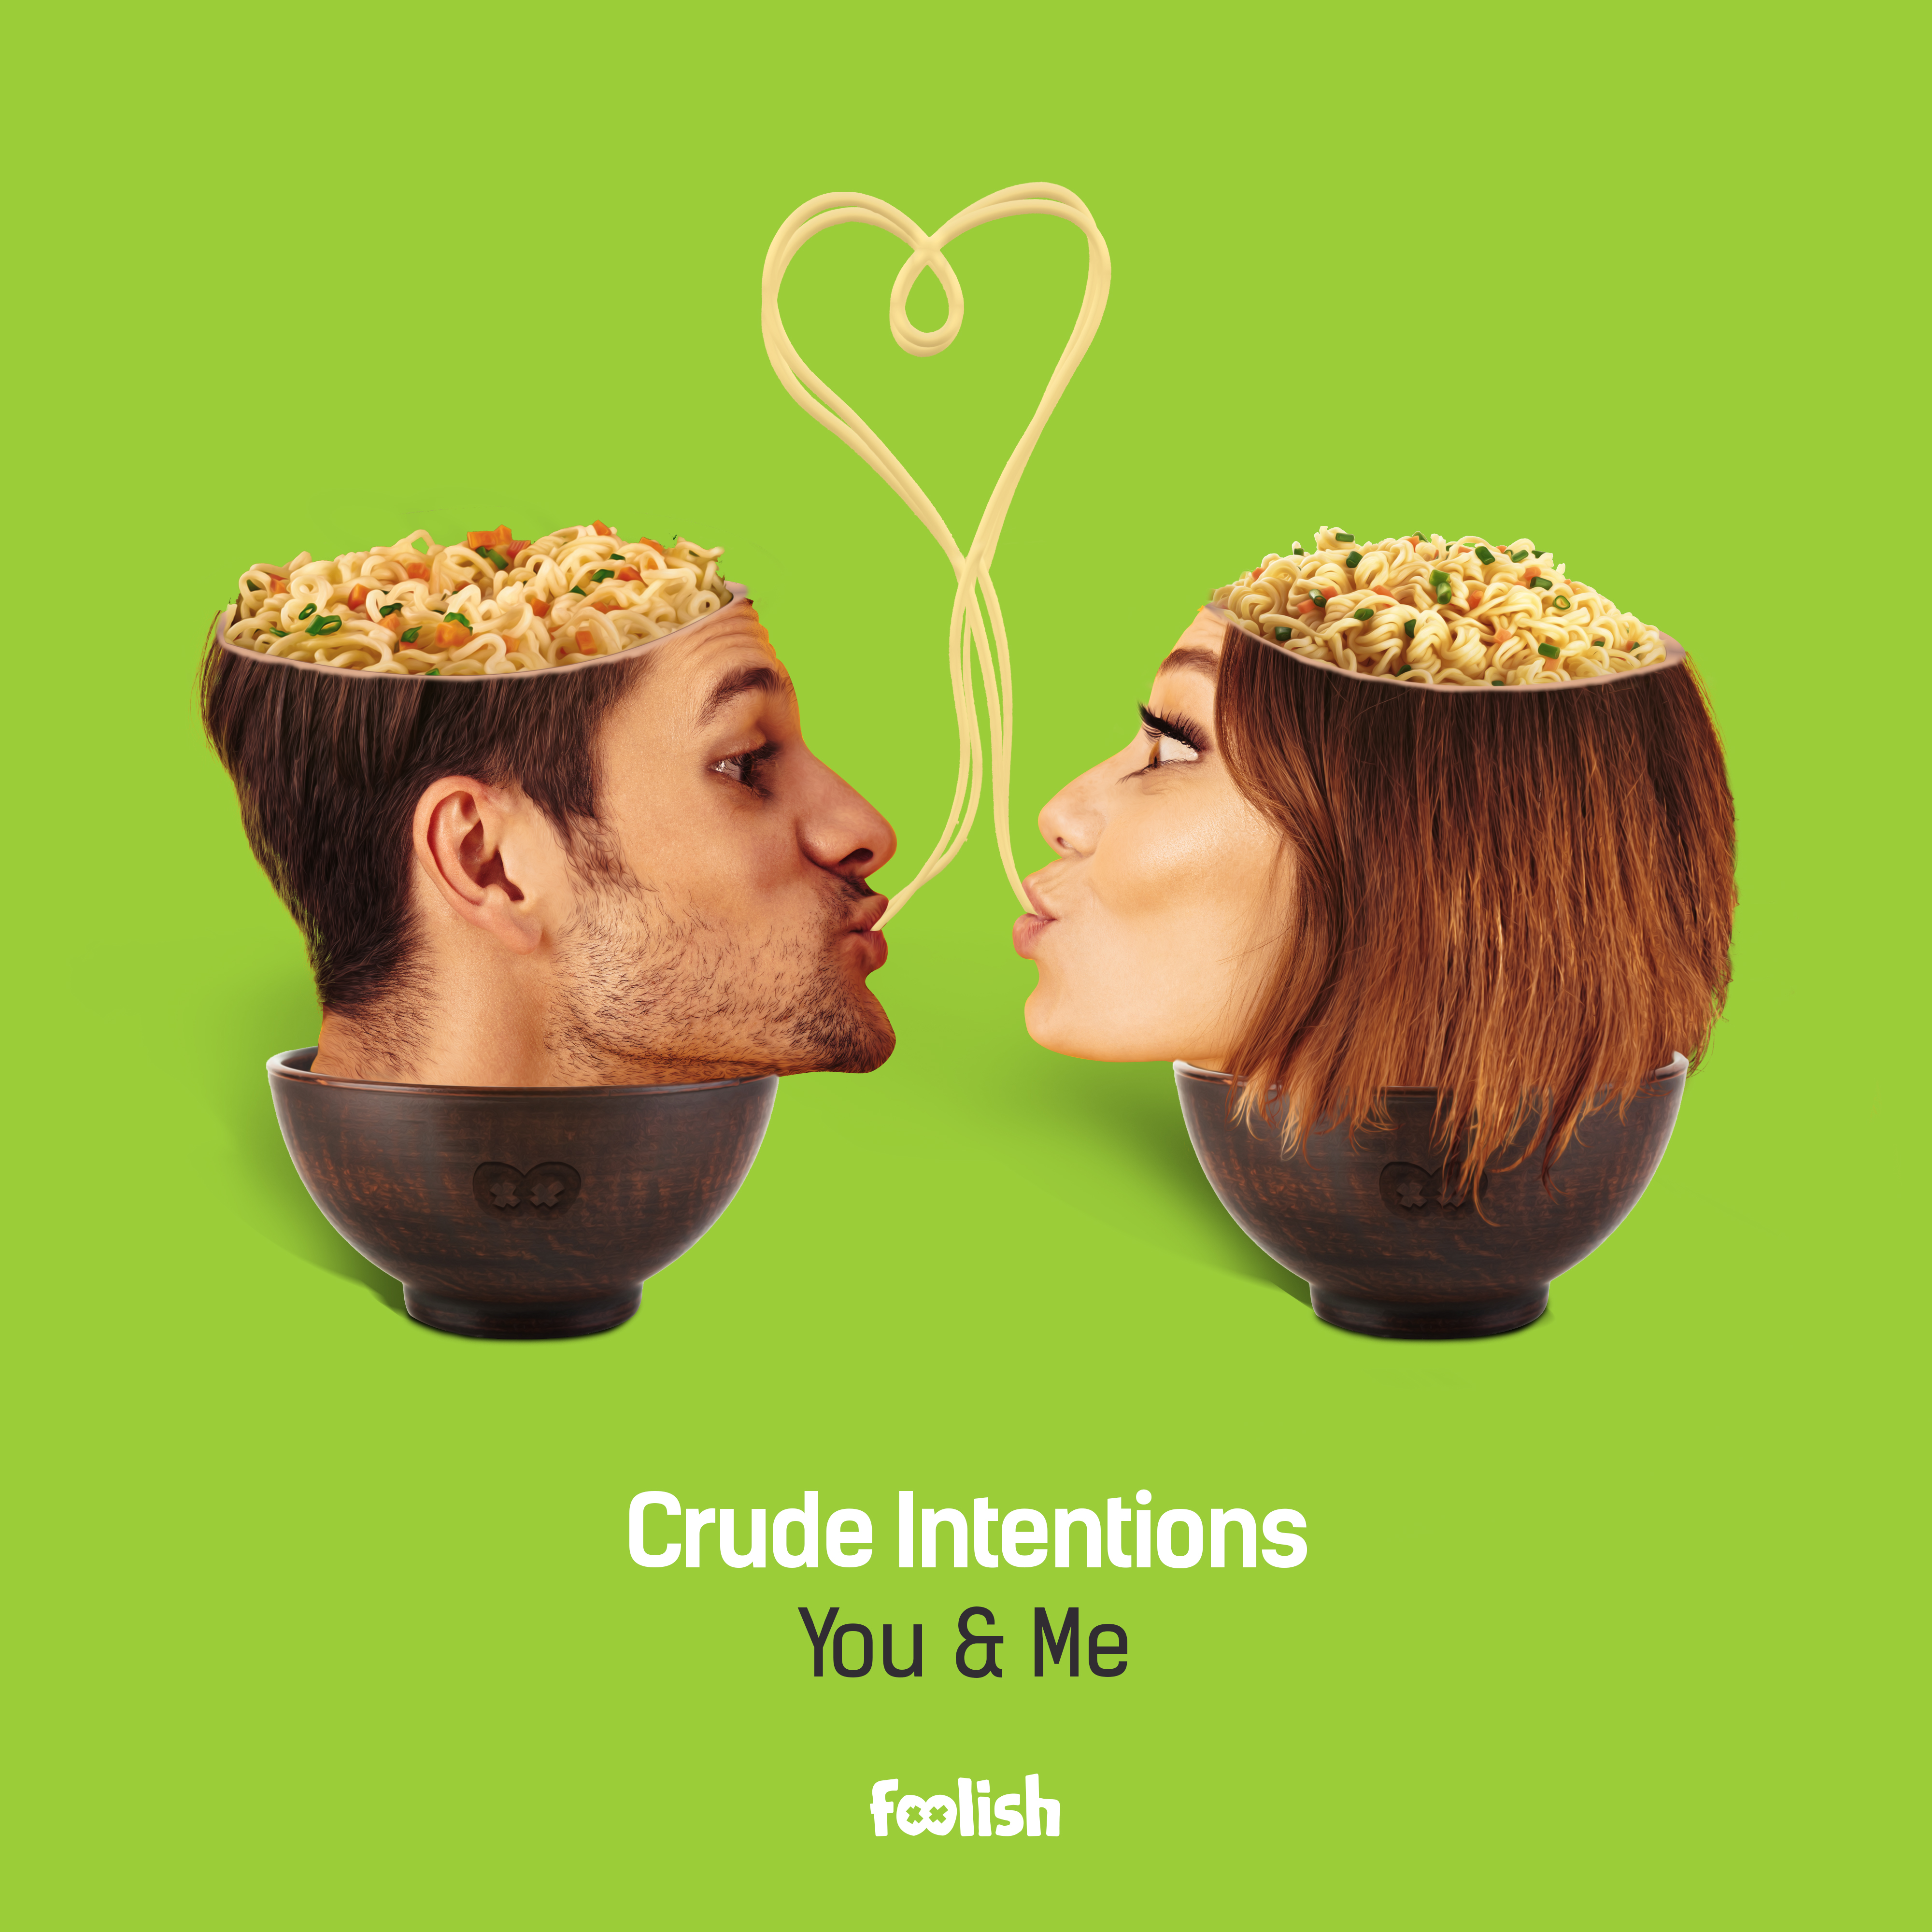 Crude Intentions - You & Me